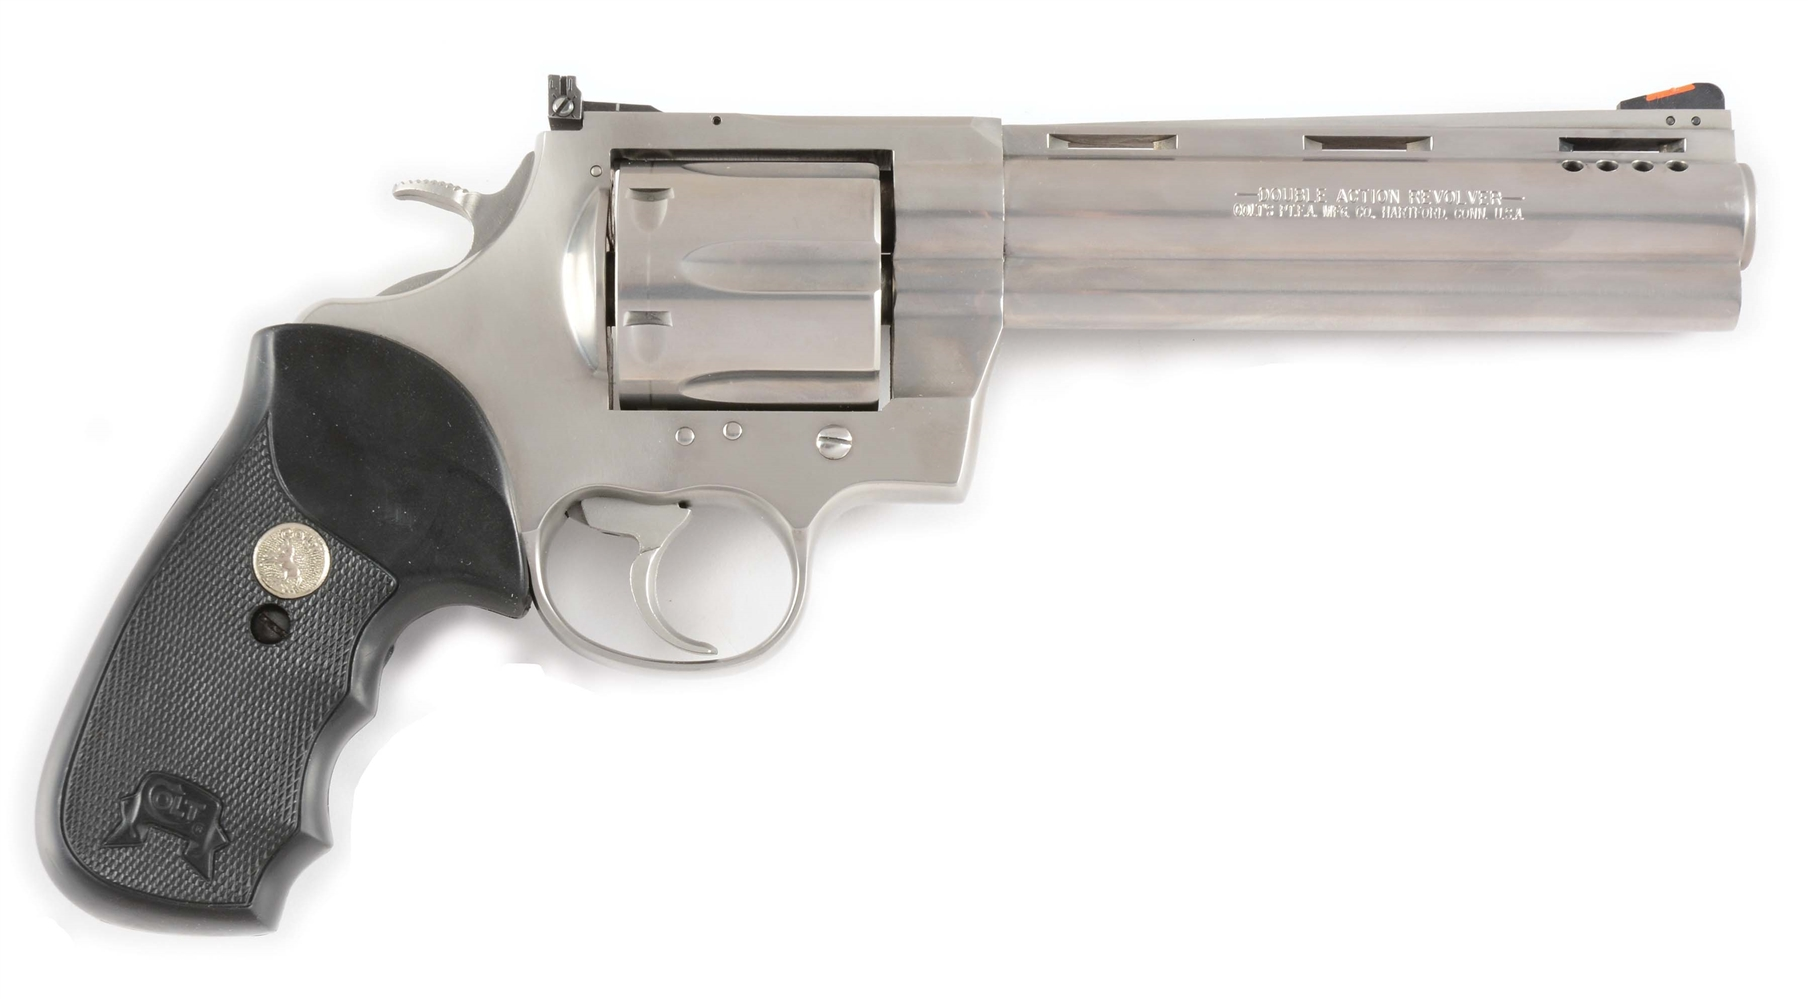 (M) Cased Colt Anaconda Ported Double Action Revolver (1997).